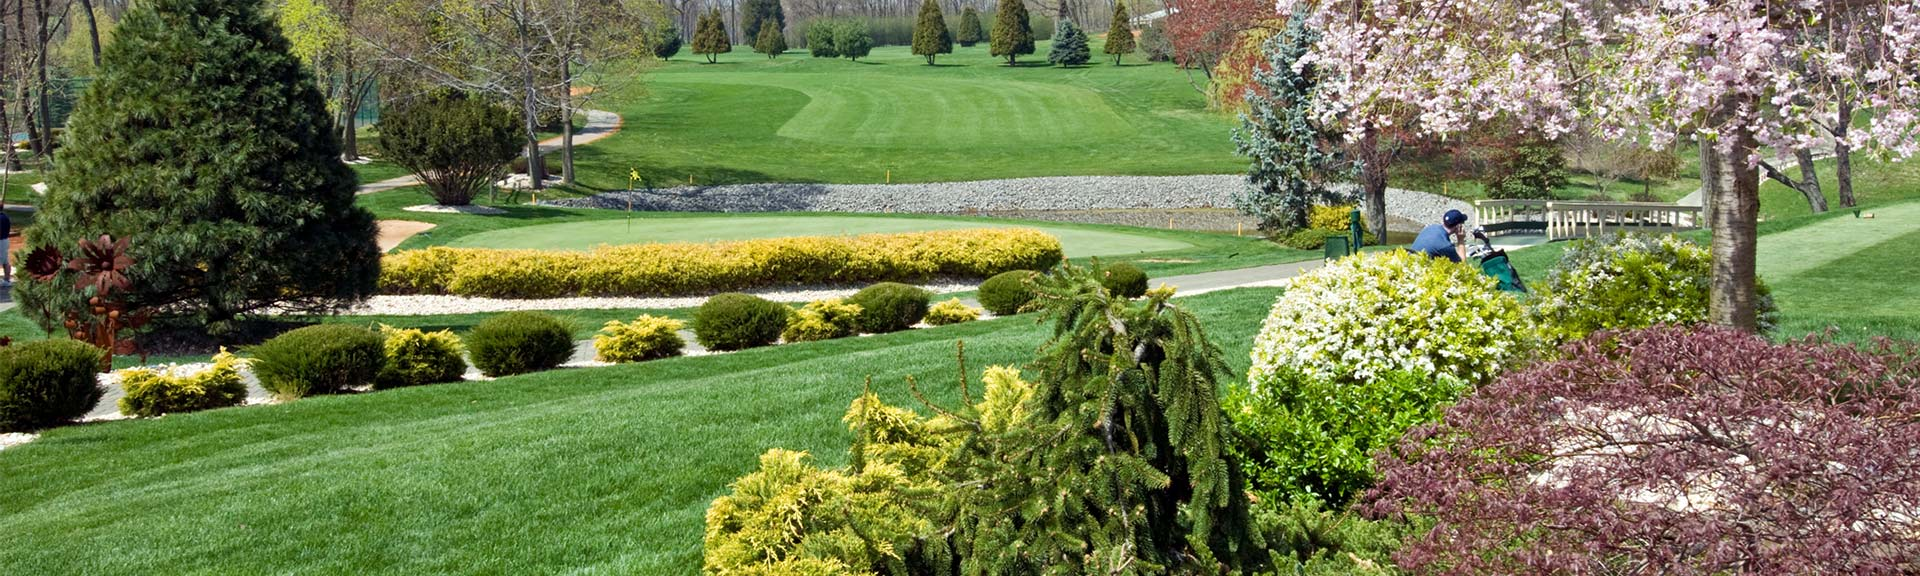 Turf and Ornamentals